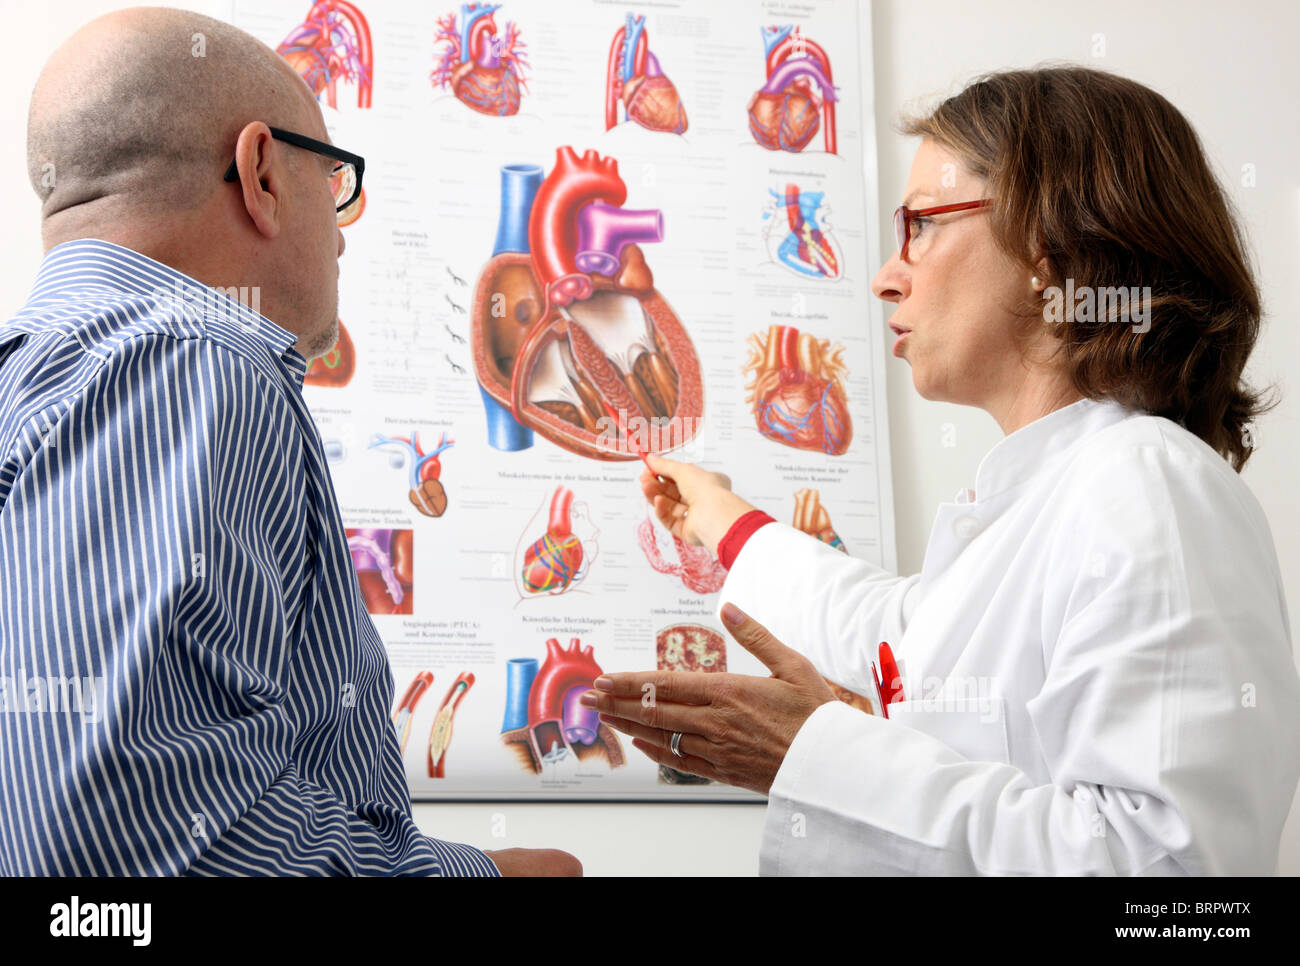 Doctors surgery, Female doctor explains the function and diseases of the human heart to a male patient. Consultation - Stock Image